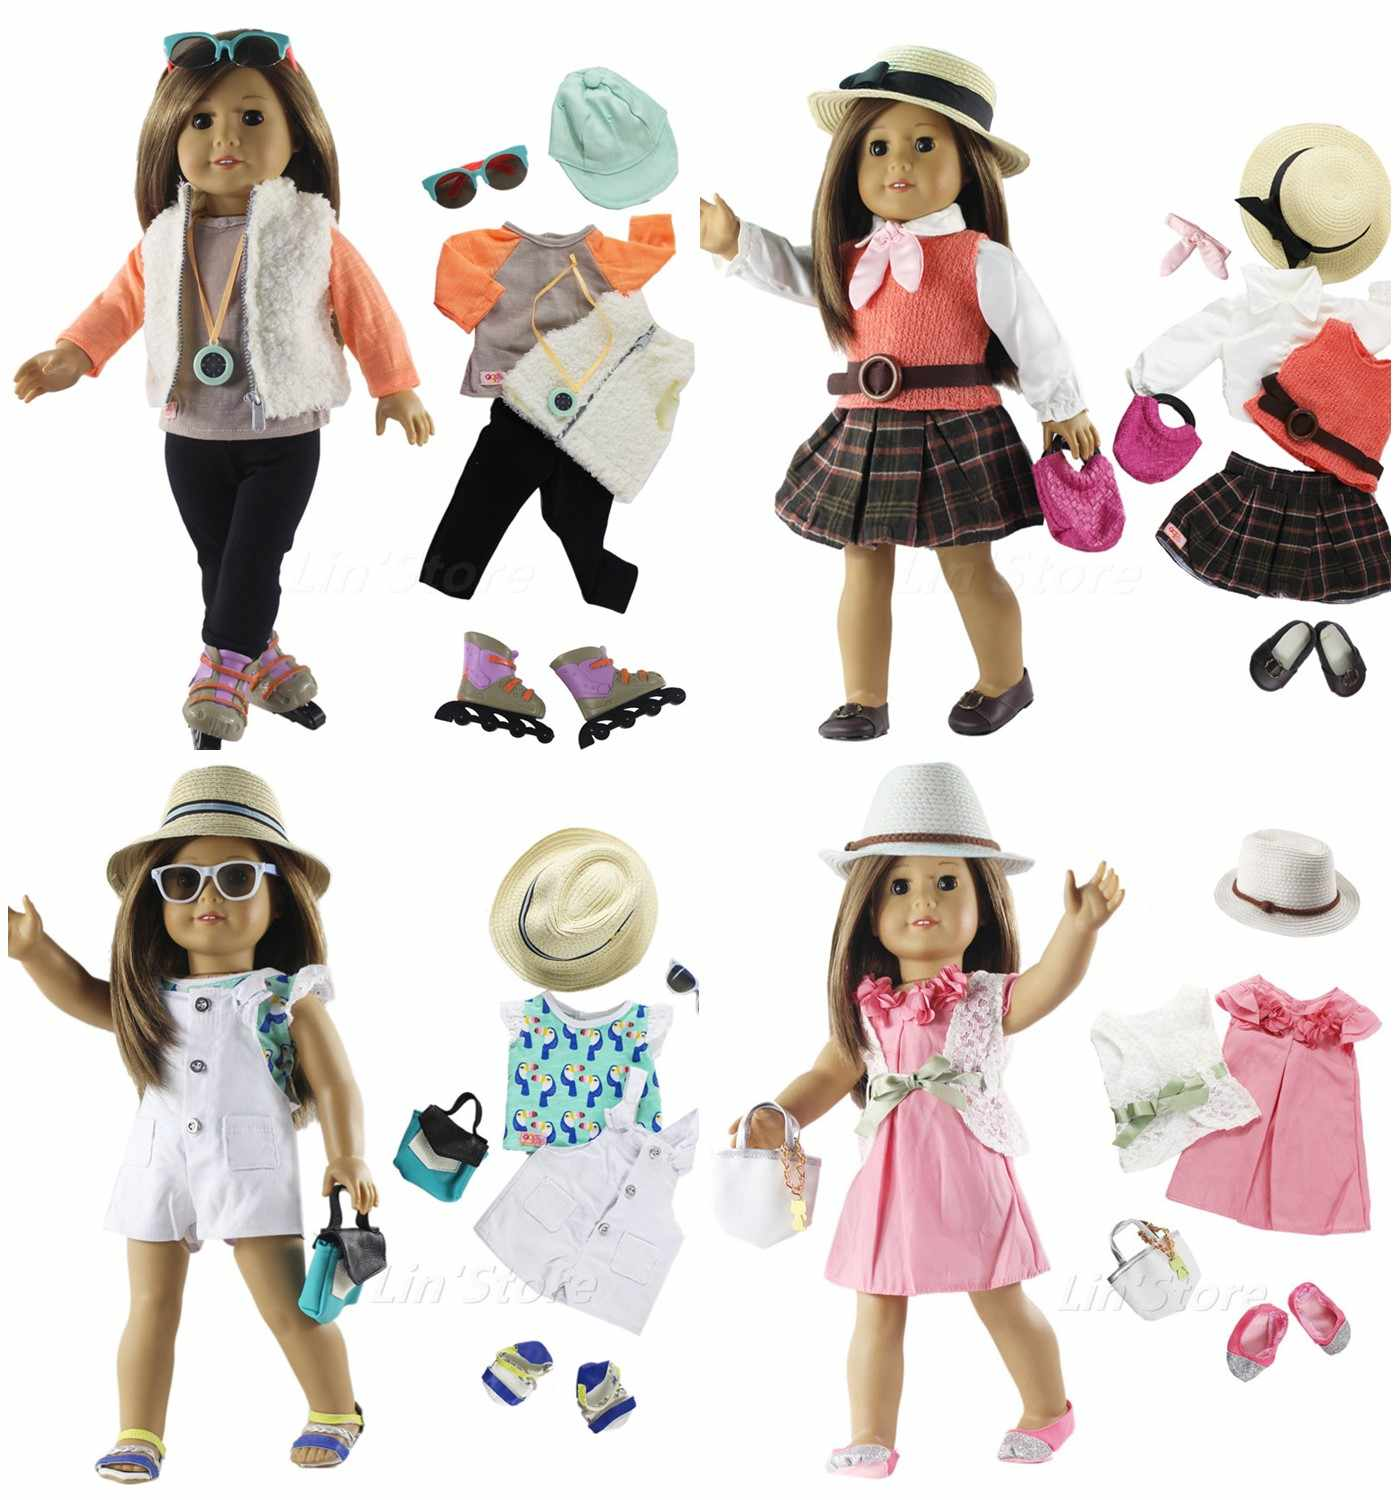 "Fashion Doll Clothes Set Toy Clothing Outfit for 18"" American Doll Casual Clothes Many Style for Choice B04"